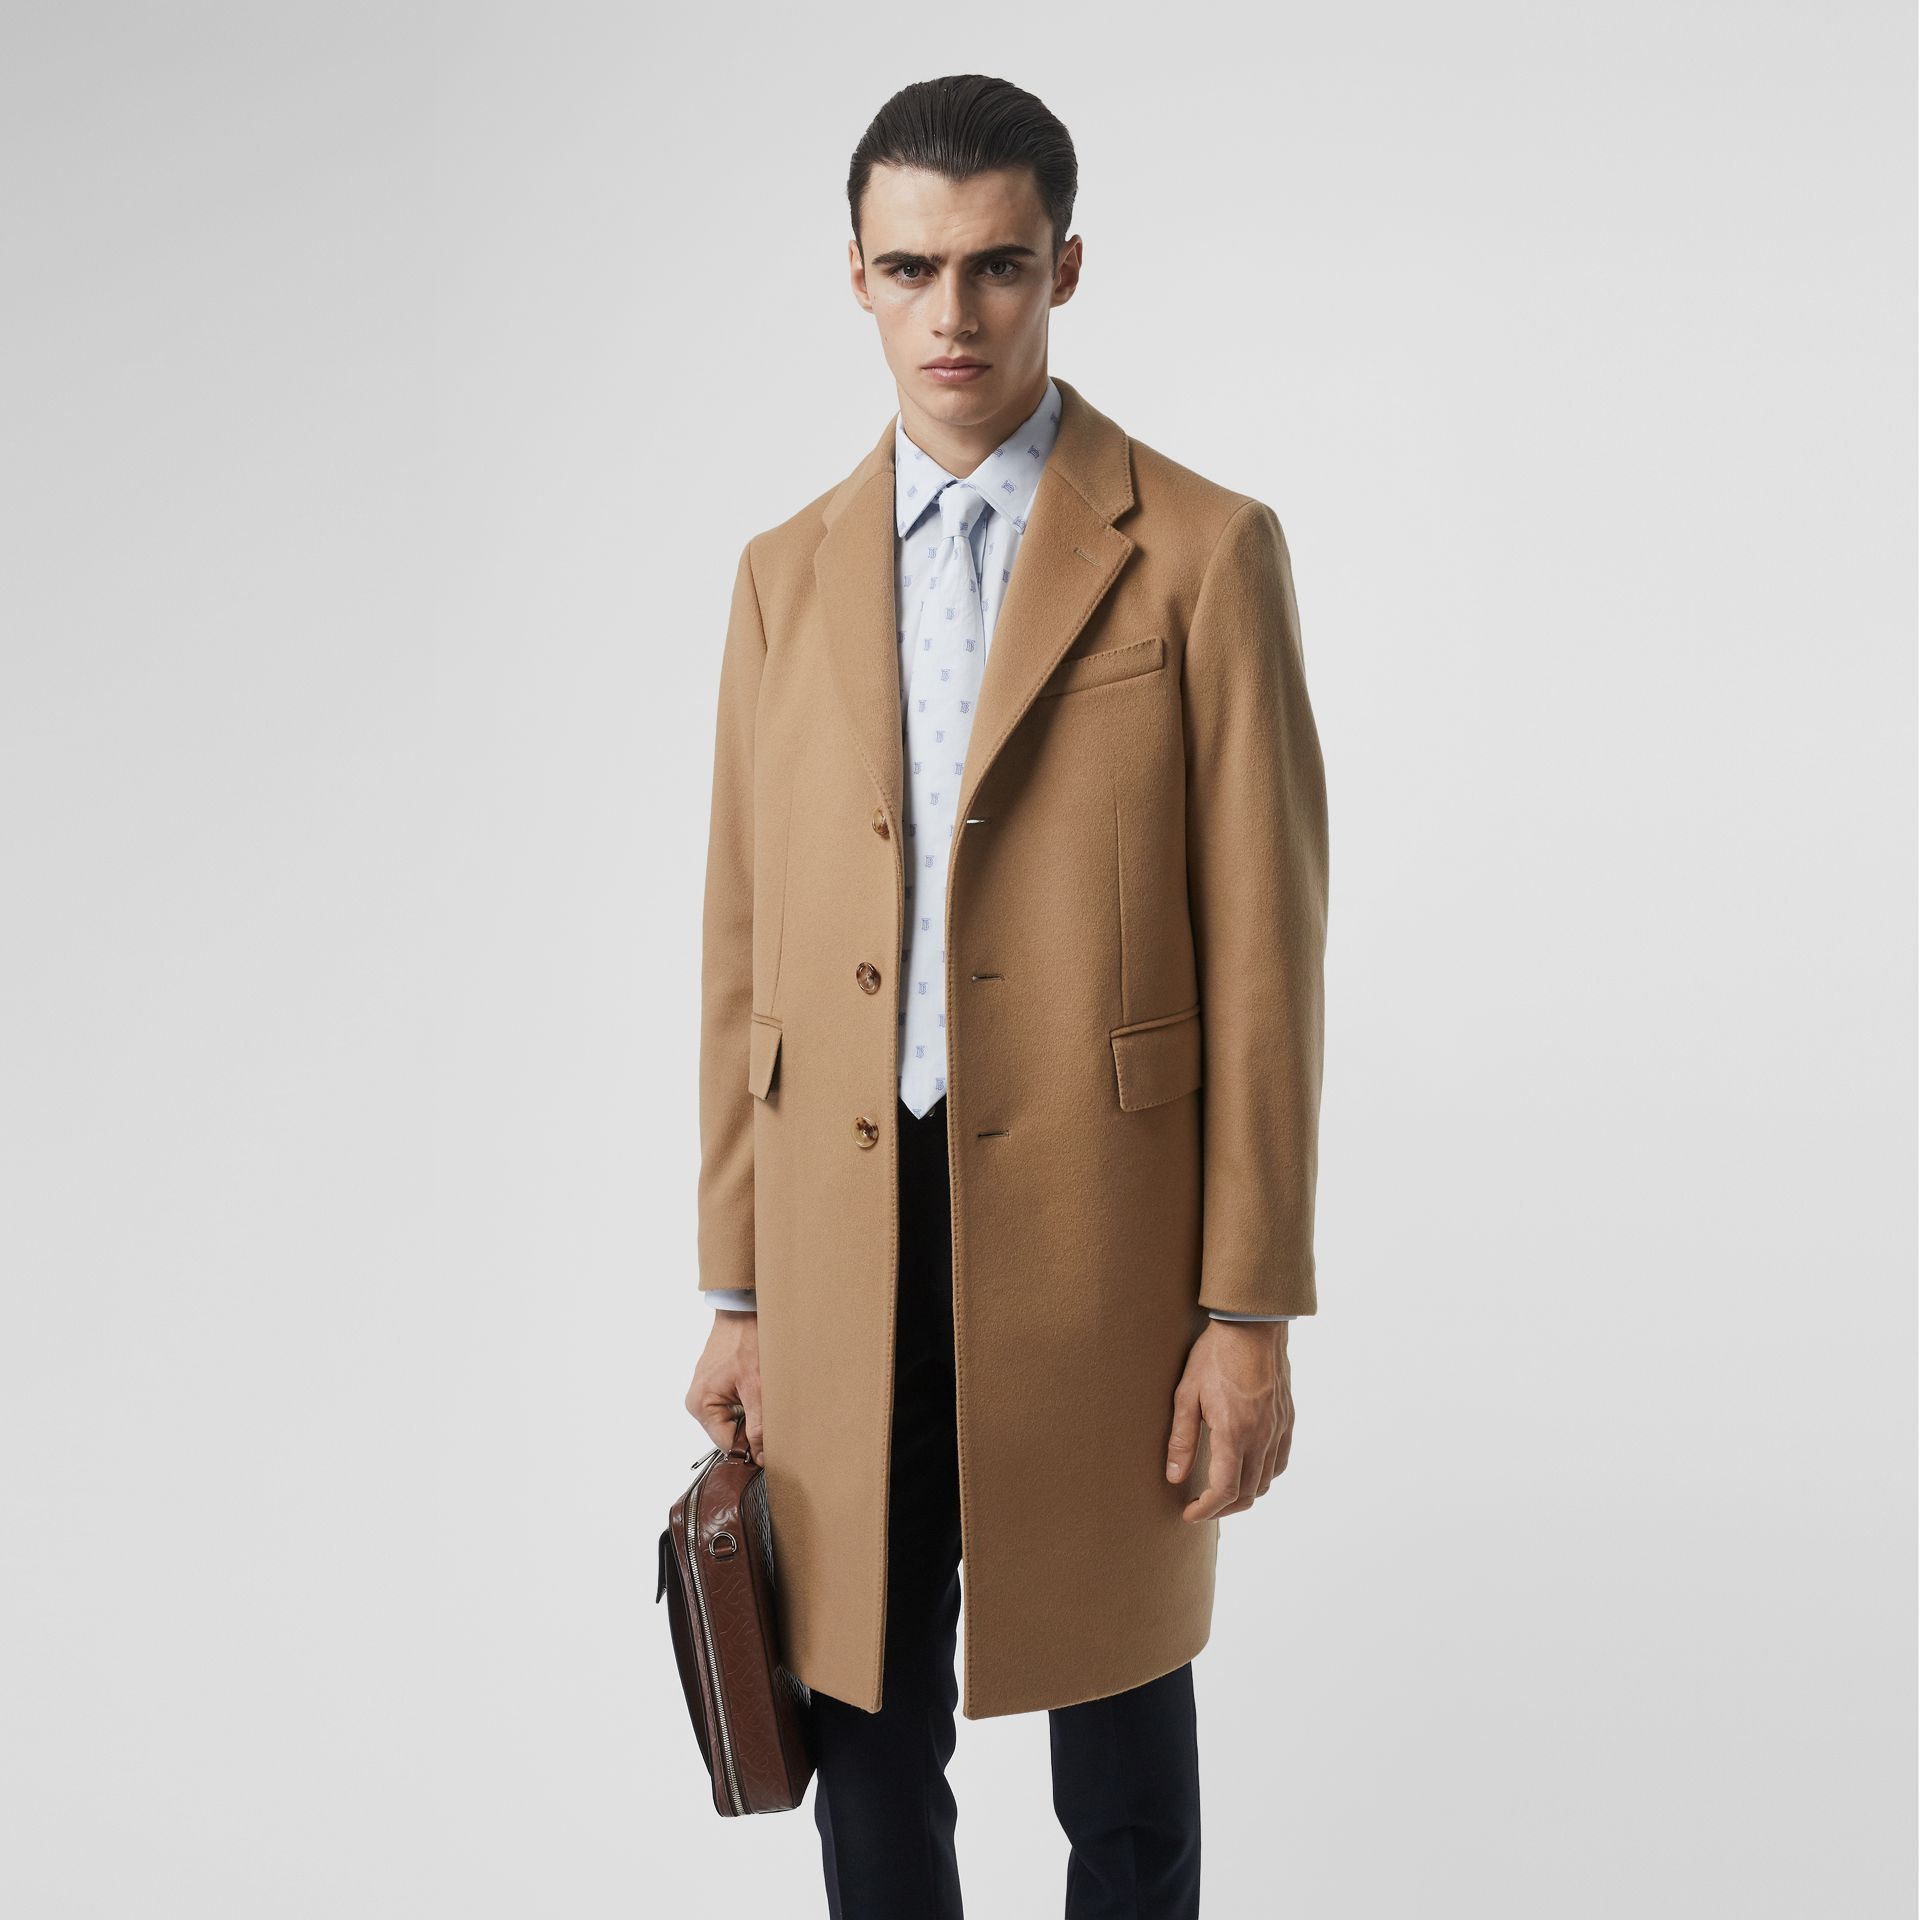 Wool Cashmere Tailored Coat in Camel - Men | Burberry Singapore - gallery image 4